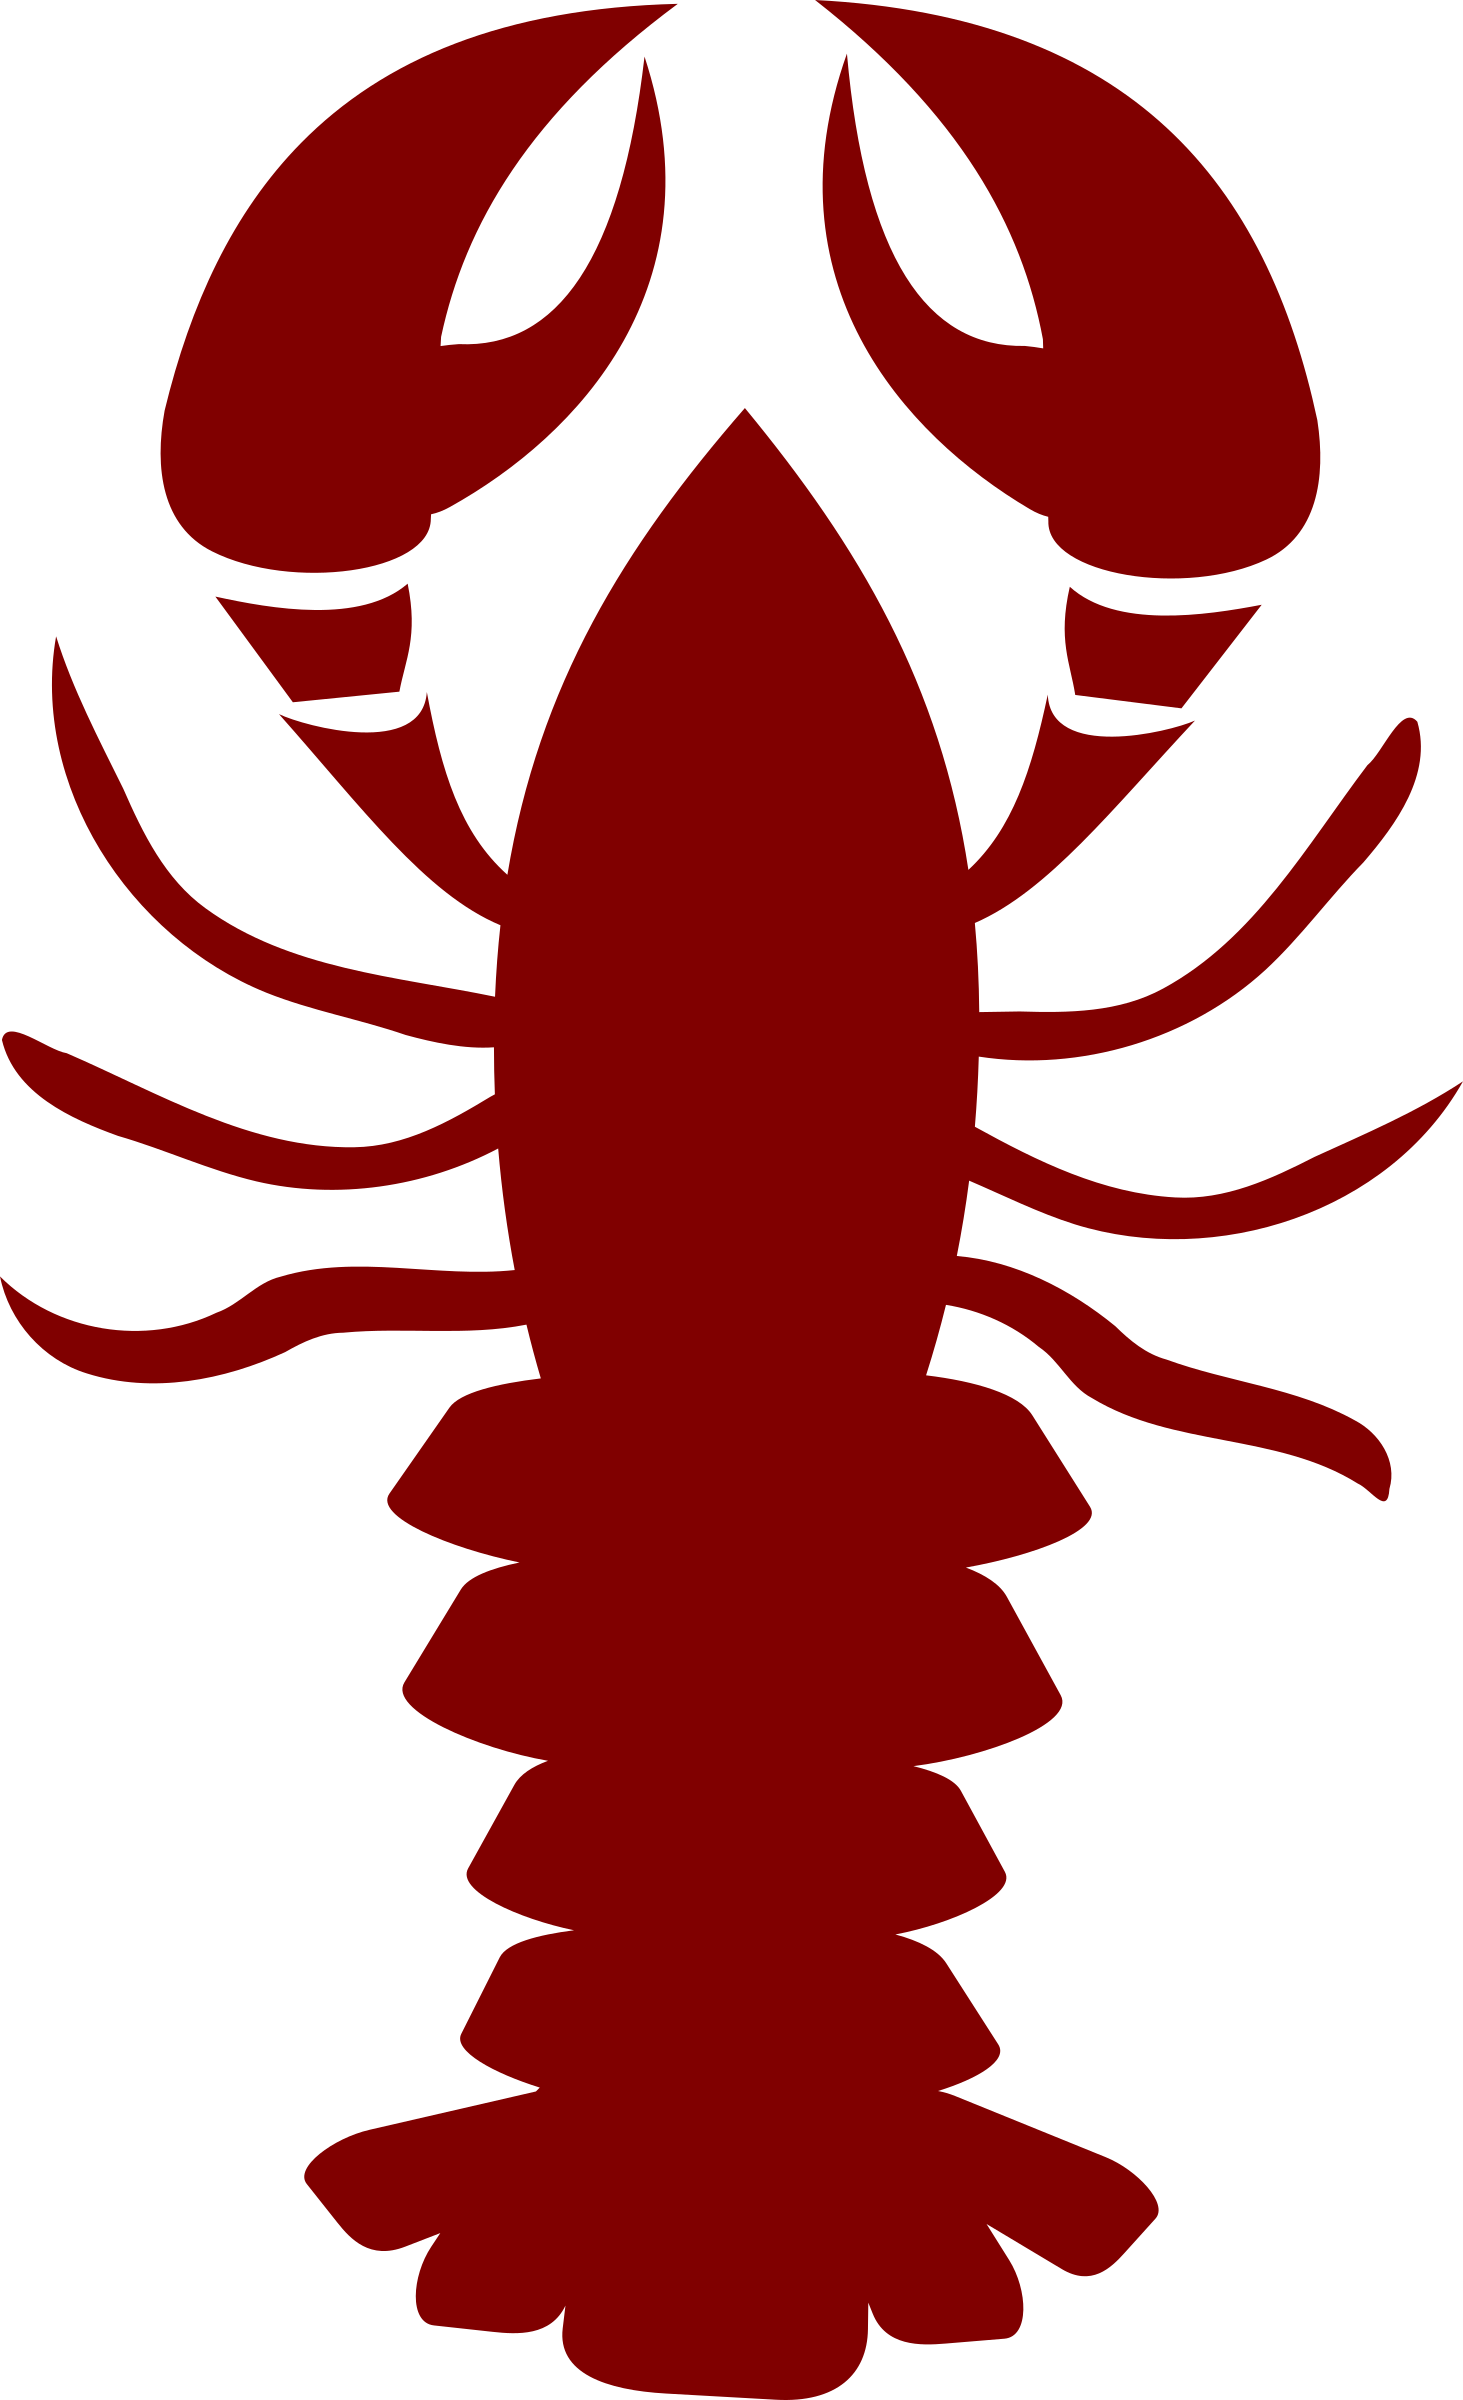 Lobster silhouette png. Clipart vector illustration image